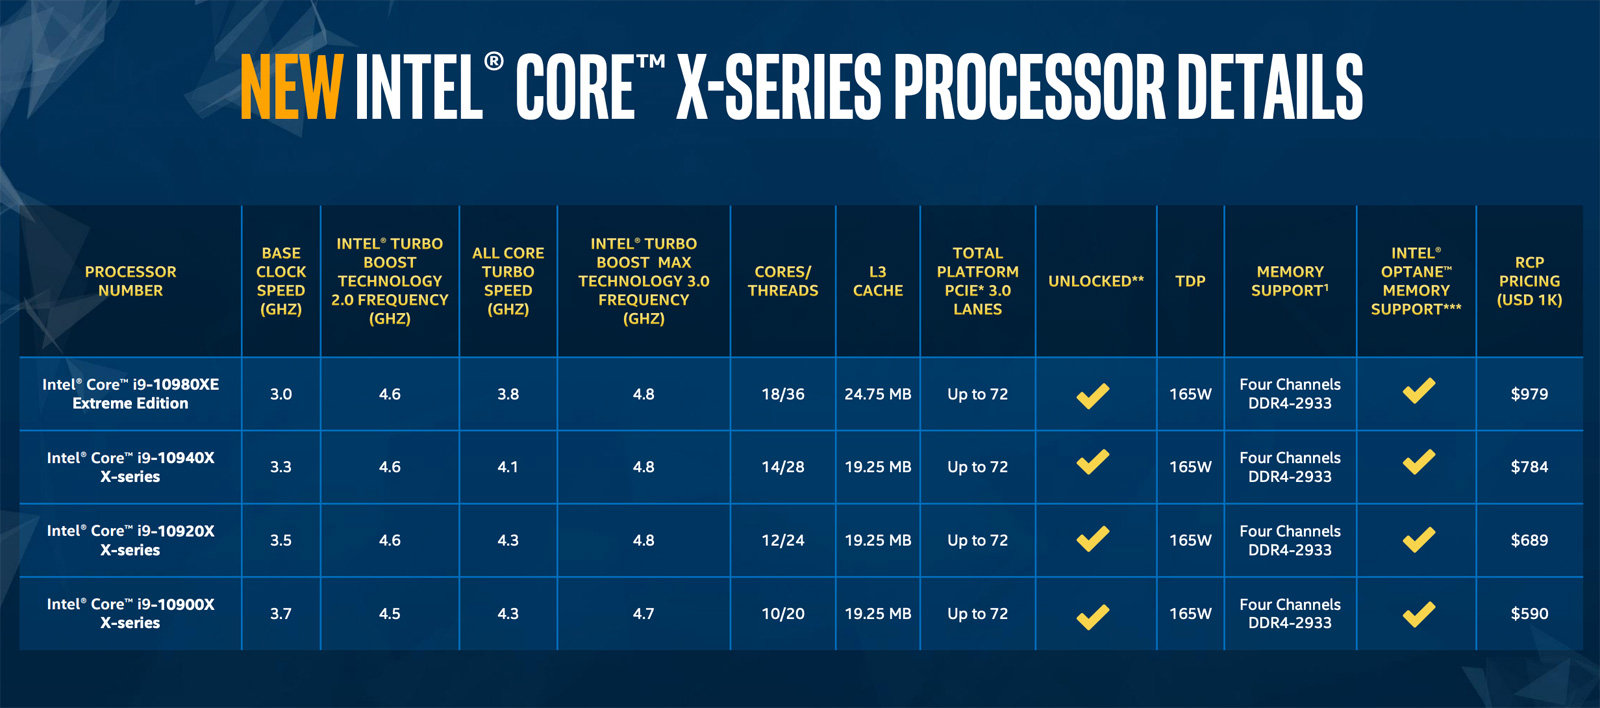 999AD1 Intel Core i9-9980XE Extreme Edition Processor 18 Cores up to 4.4GHz Turbo Unlocked LGA2066 X299 Series 165W Processors